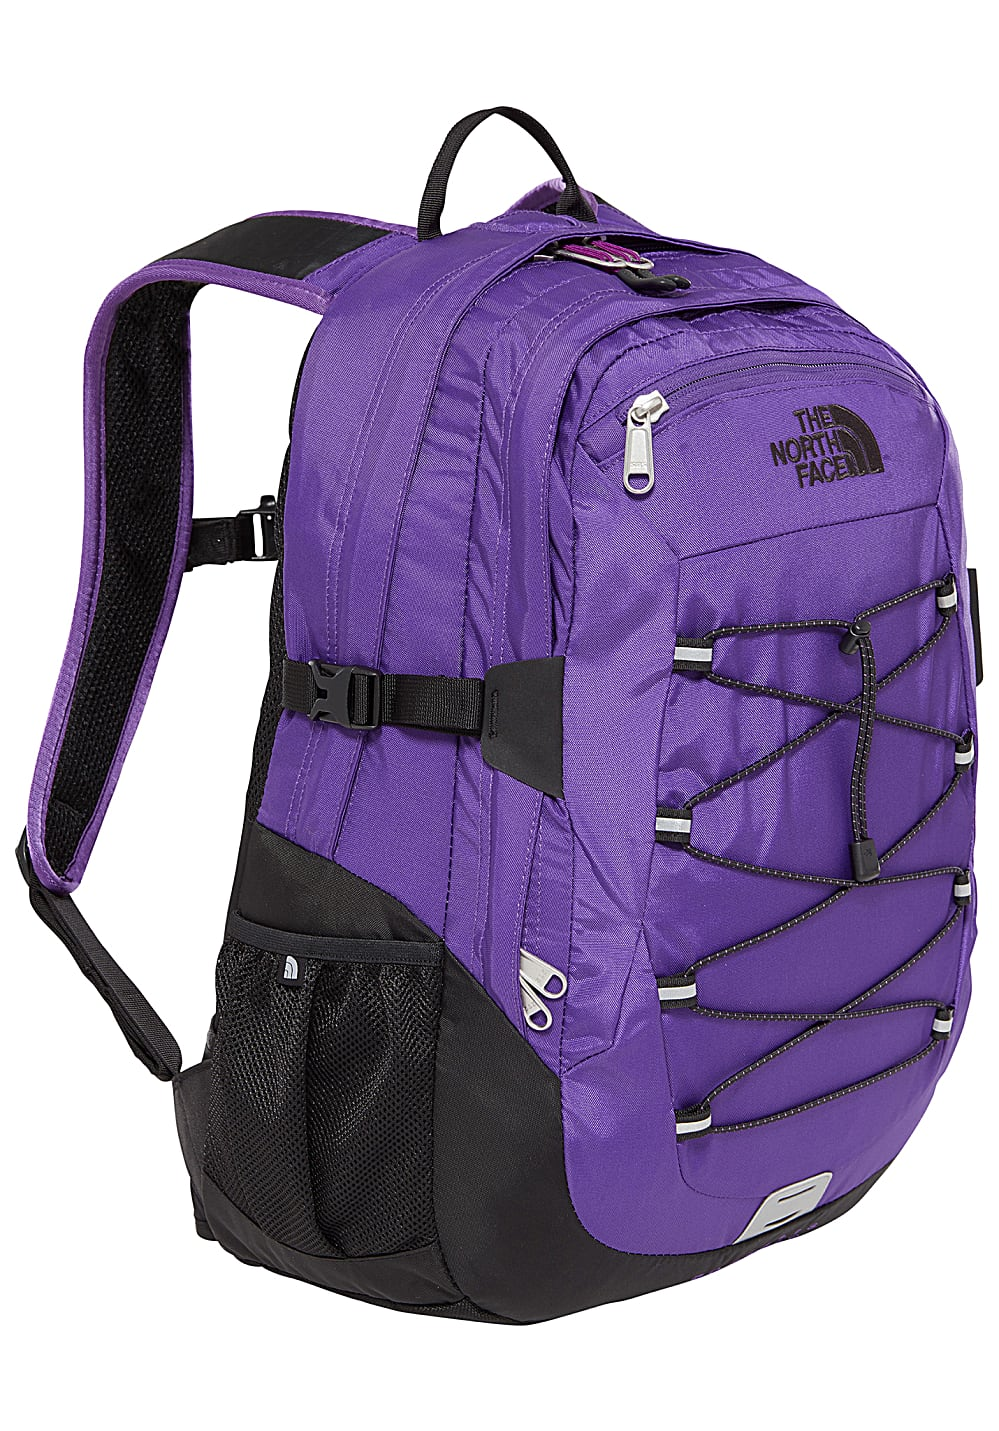 67726fdc3 THE NORTH FACE Borealis Classic - Backpack - Purple